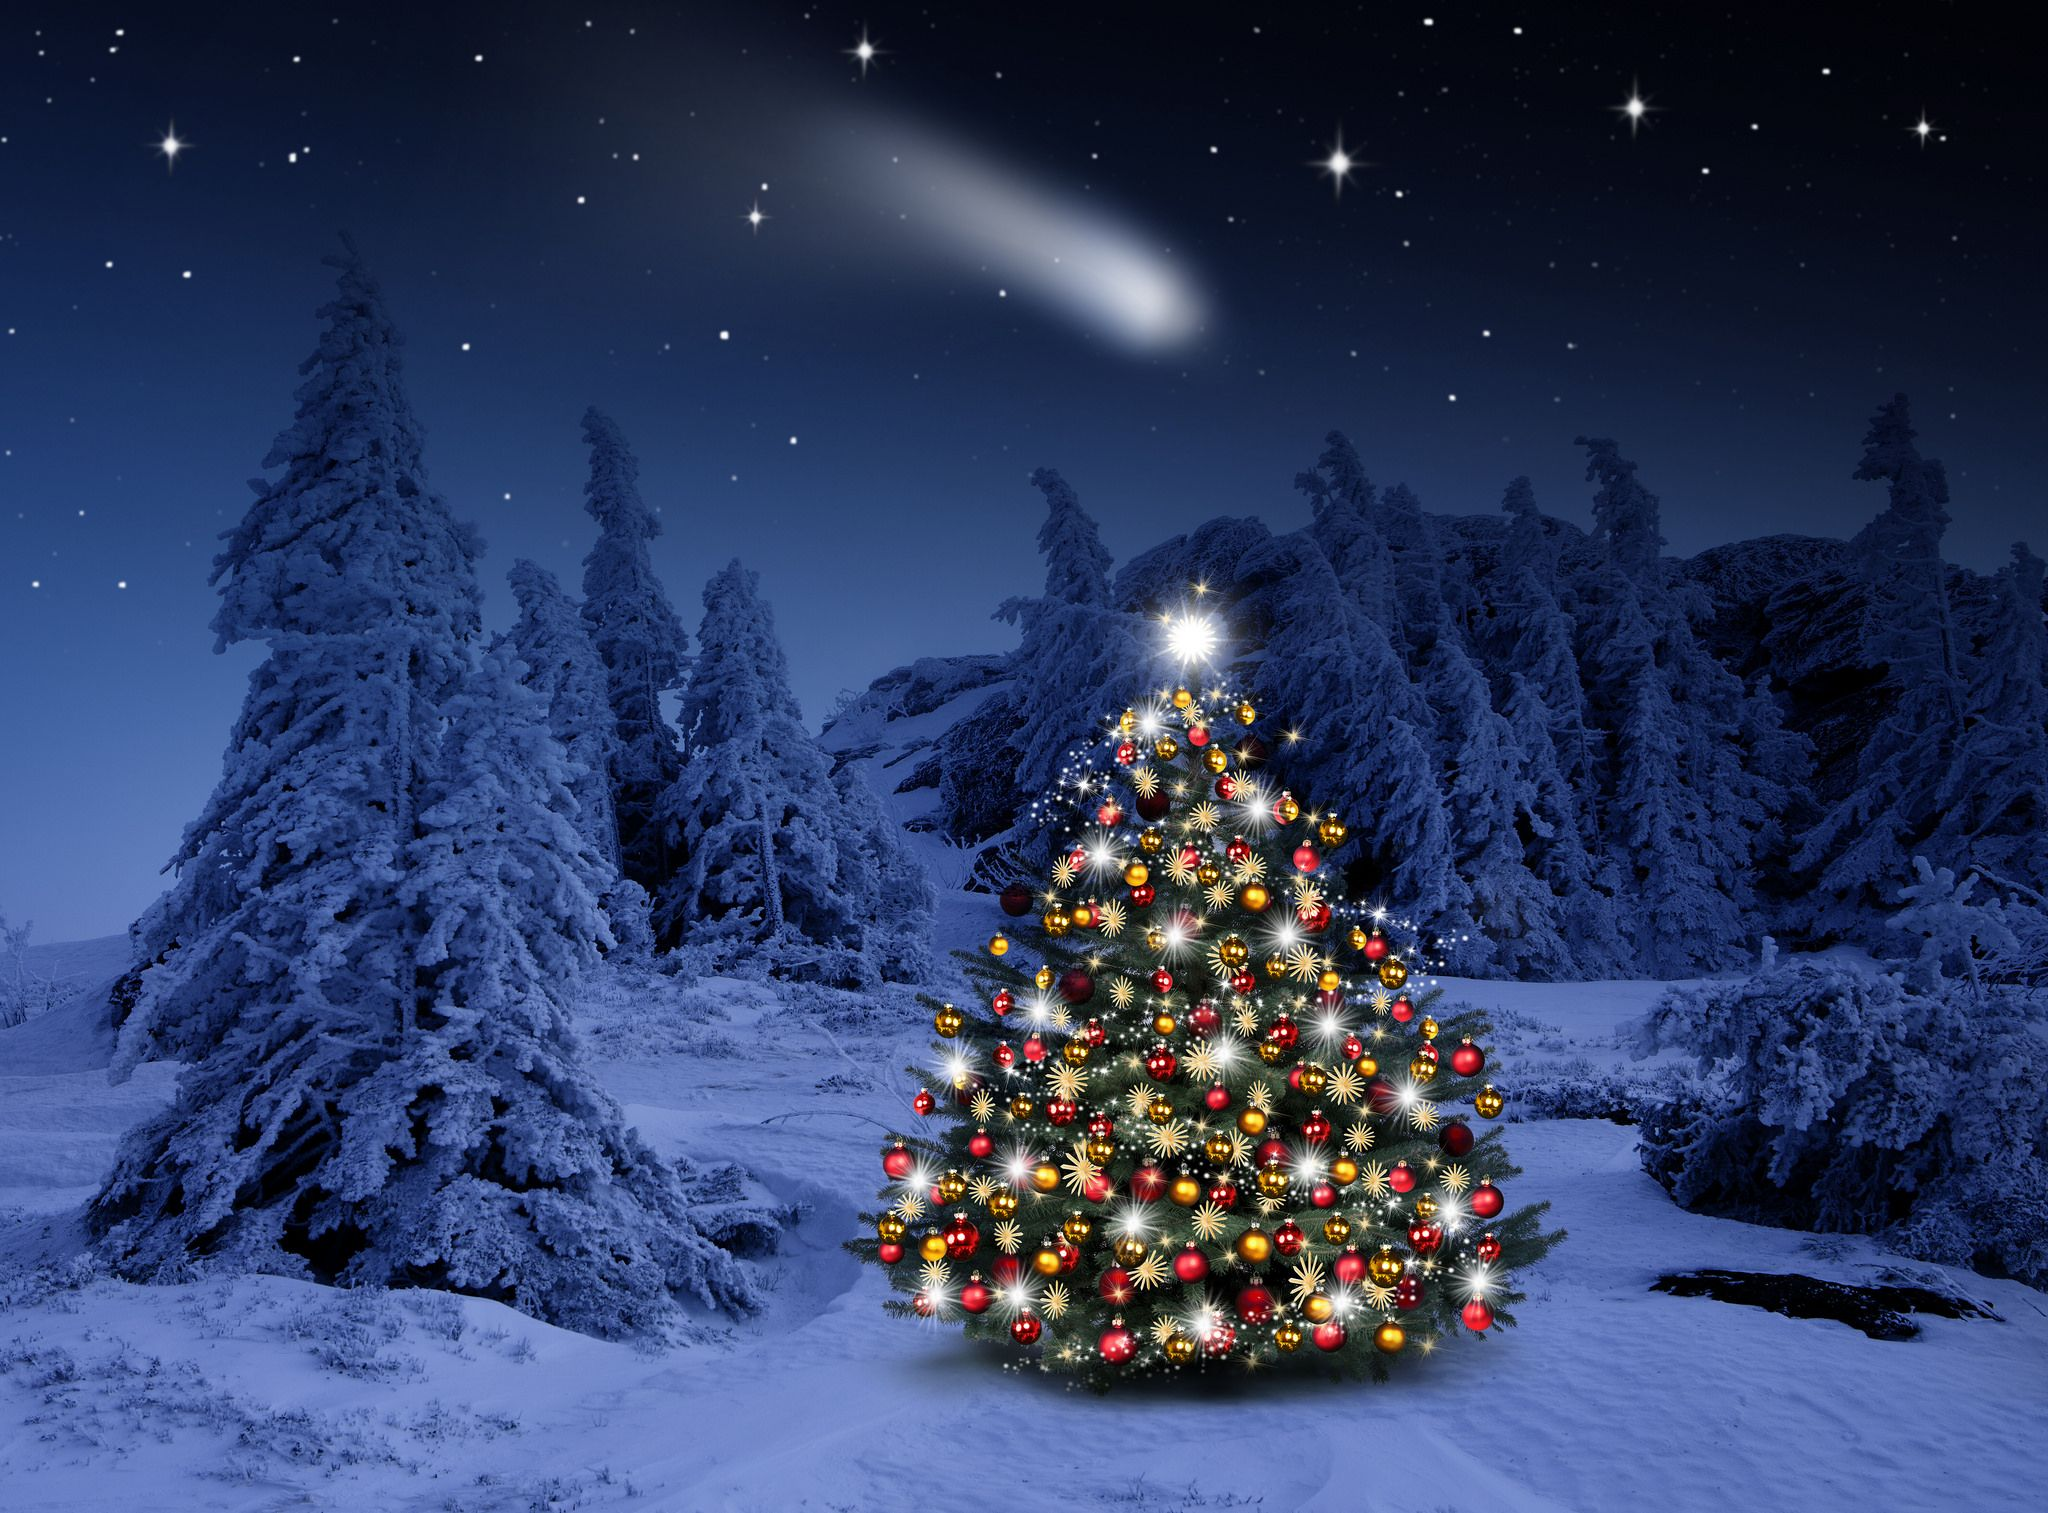 Lighted Christmas Tree In Winter Forest Computer Wallpapers Outdoor Christmas Tree Outdoor Christmas Tree Decorations Christmas Tree Lighting